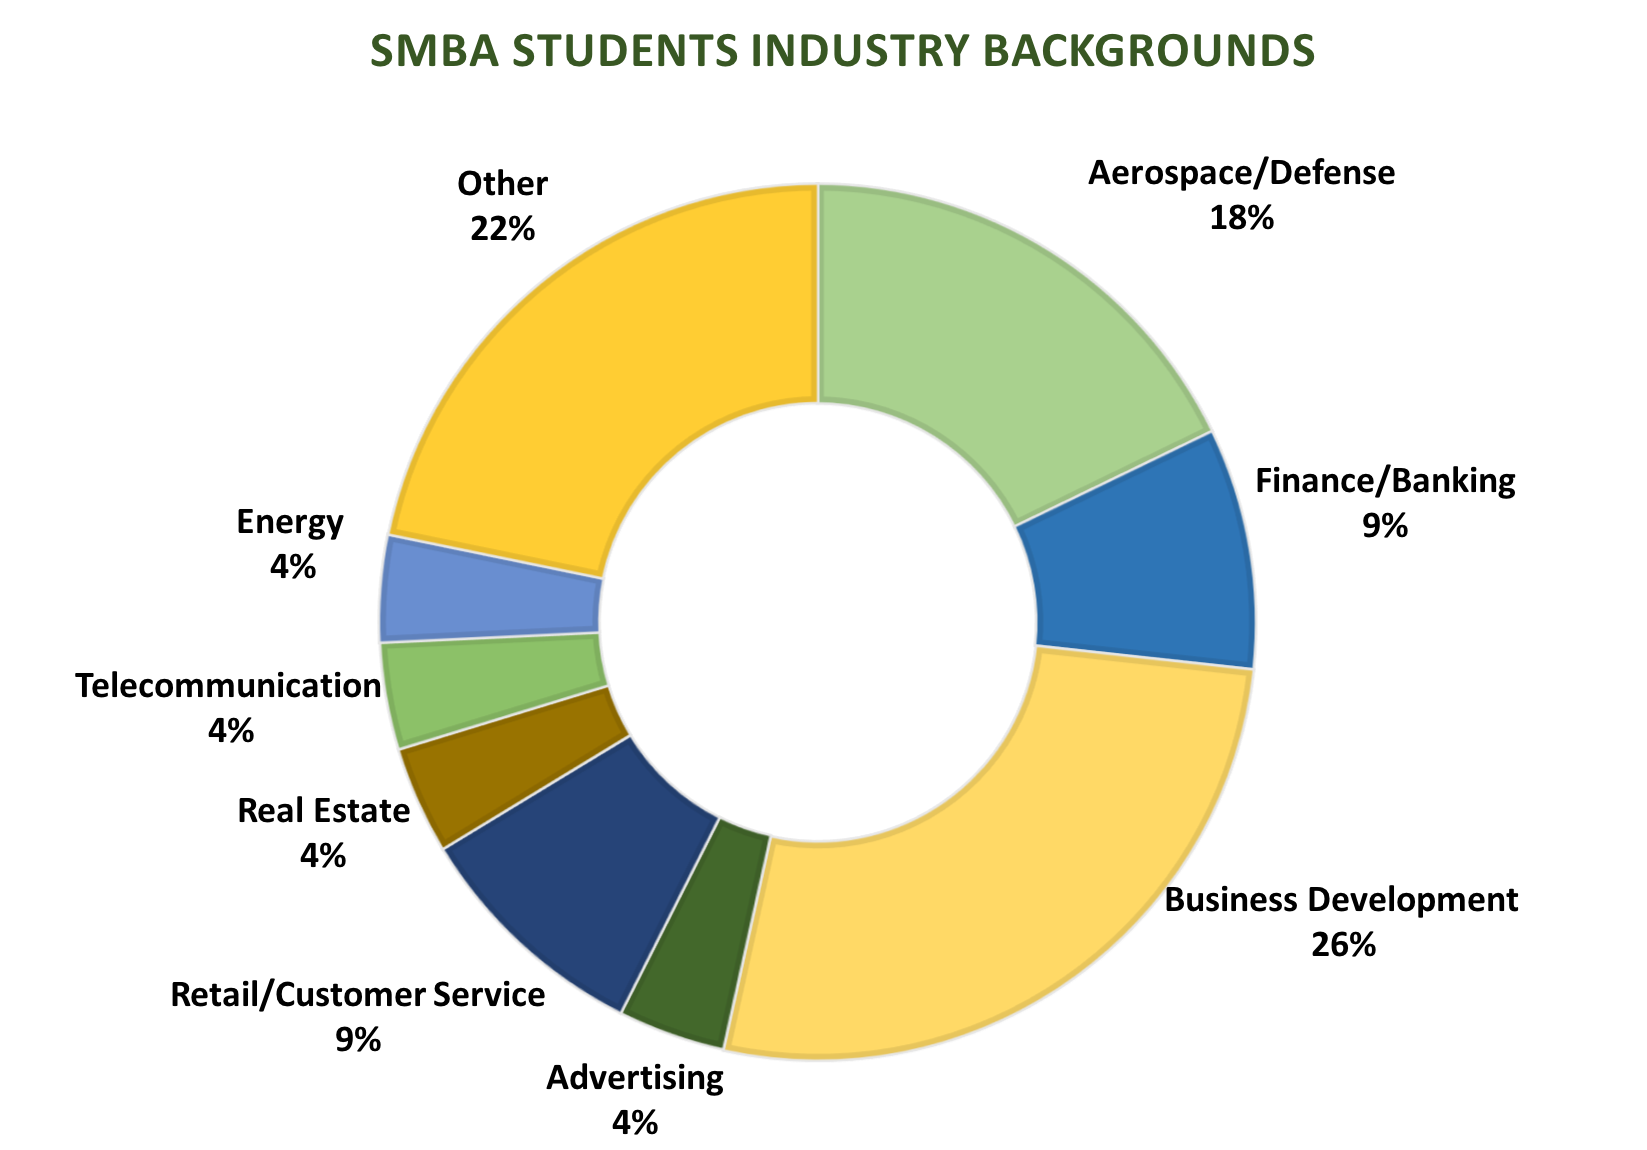 SMBA Students industry background